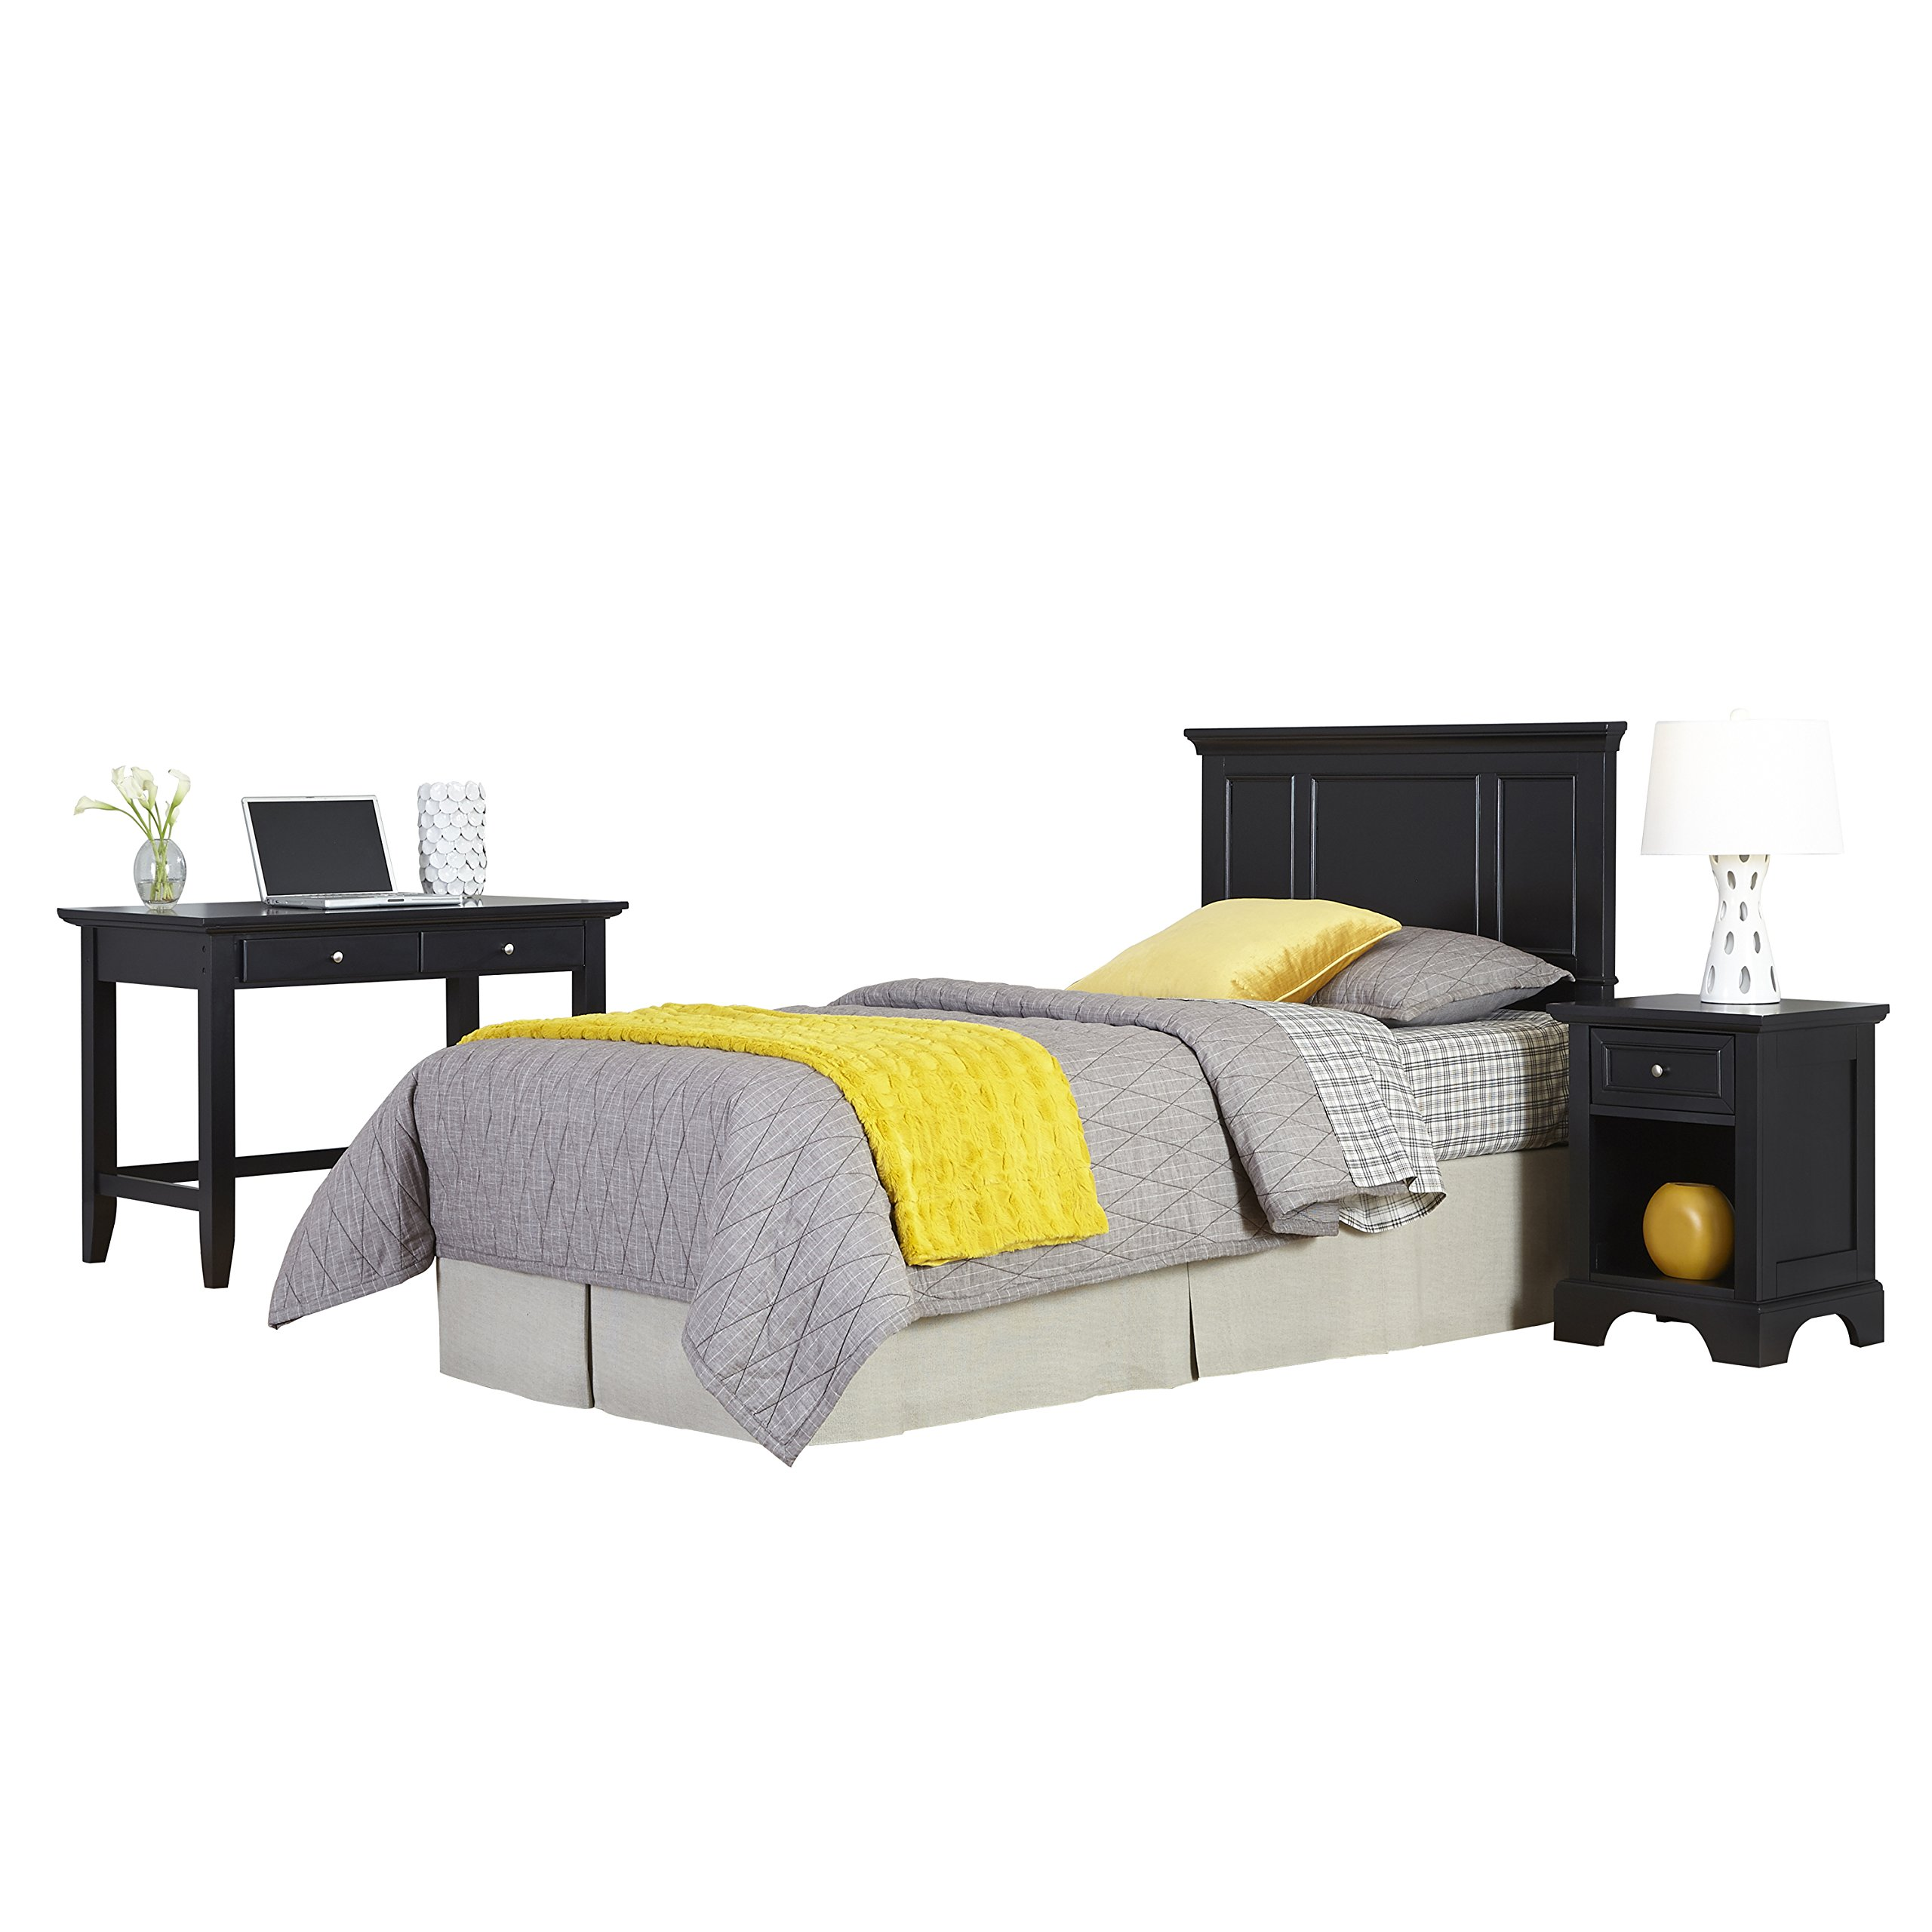 Home Styles 5531-4025 Bedford Twin Headboard, Night Stand and Student Desk, Black